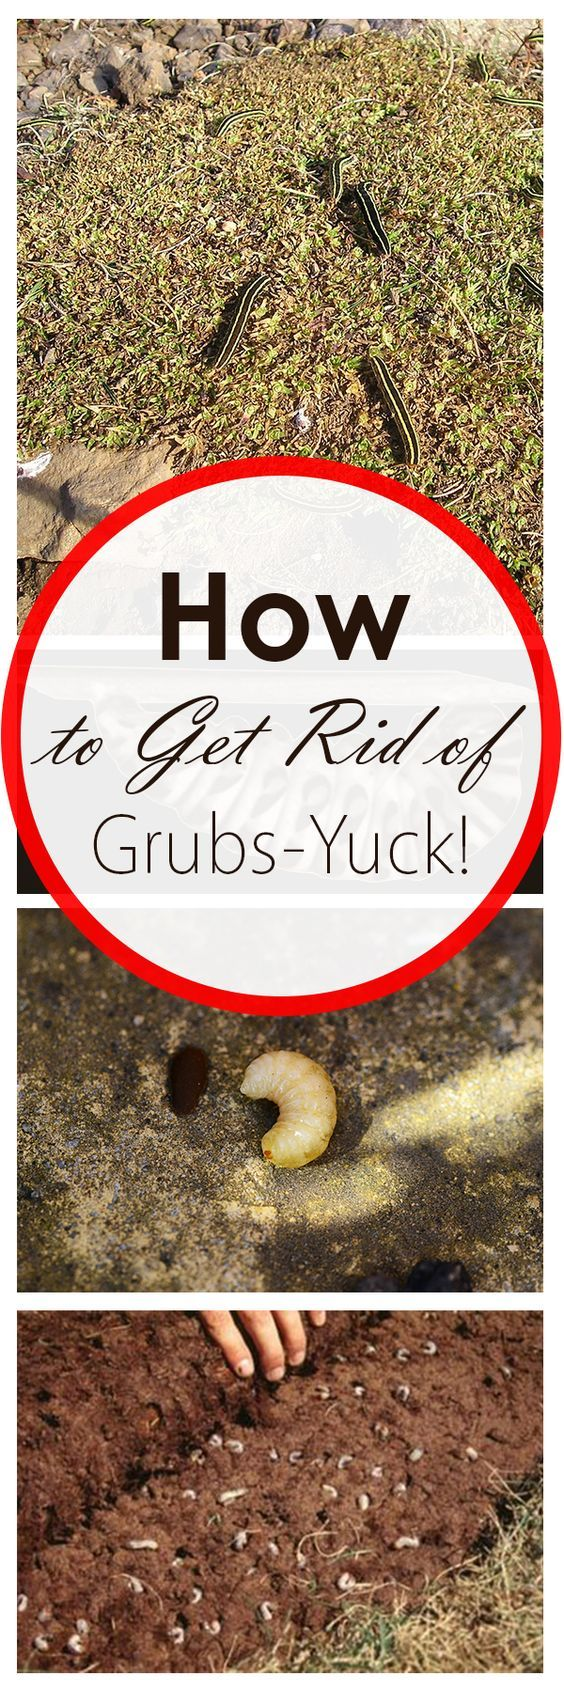 How To Get Rid Of Grubs Yuck